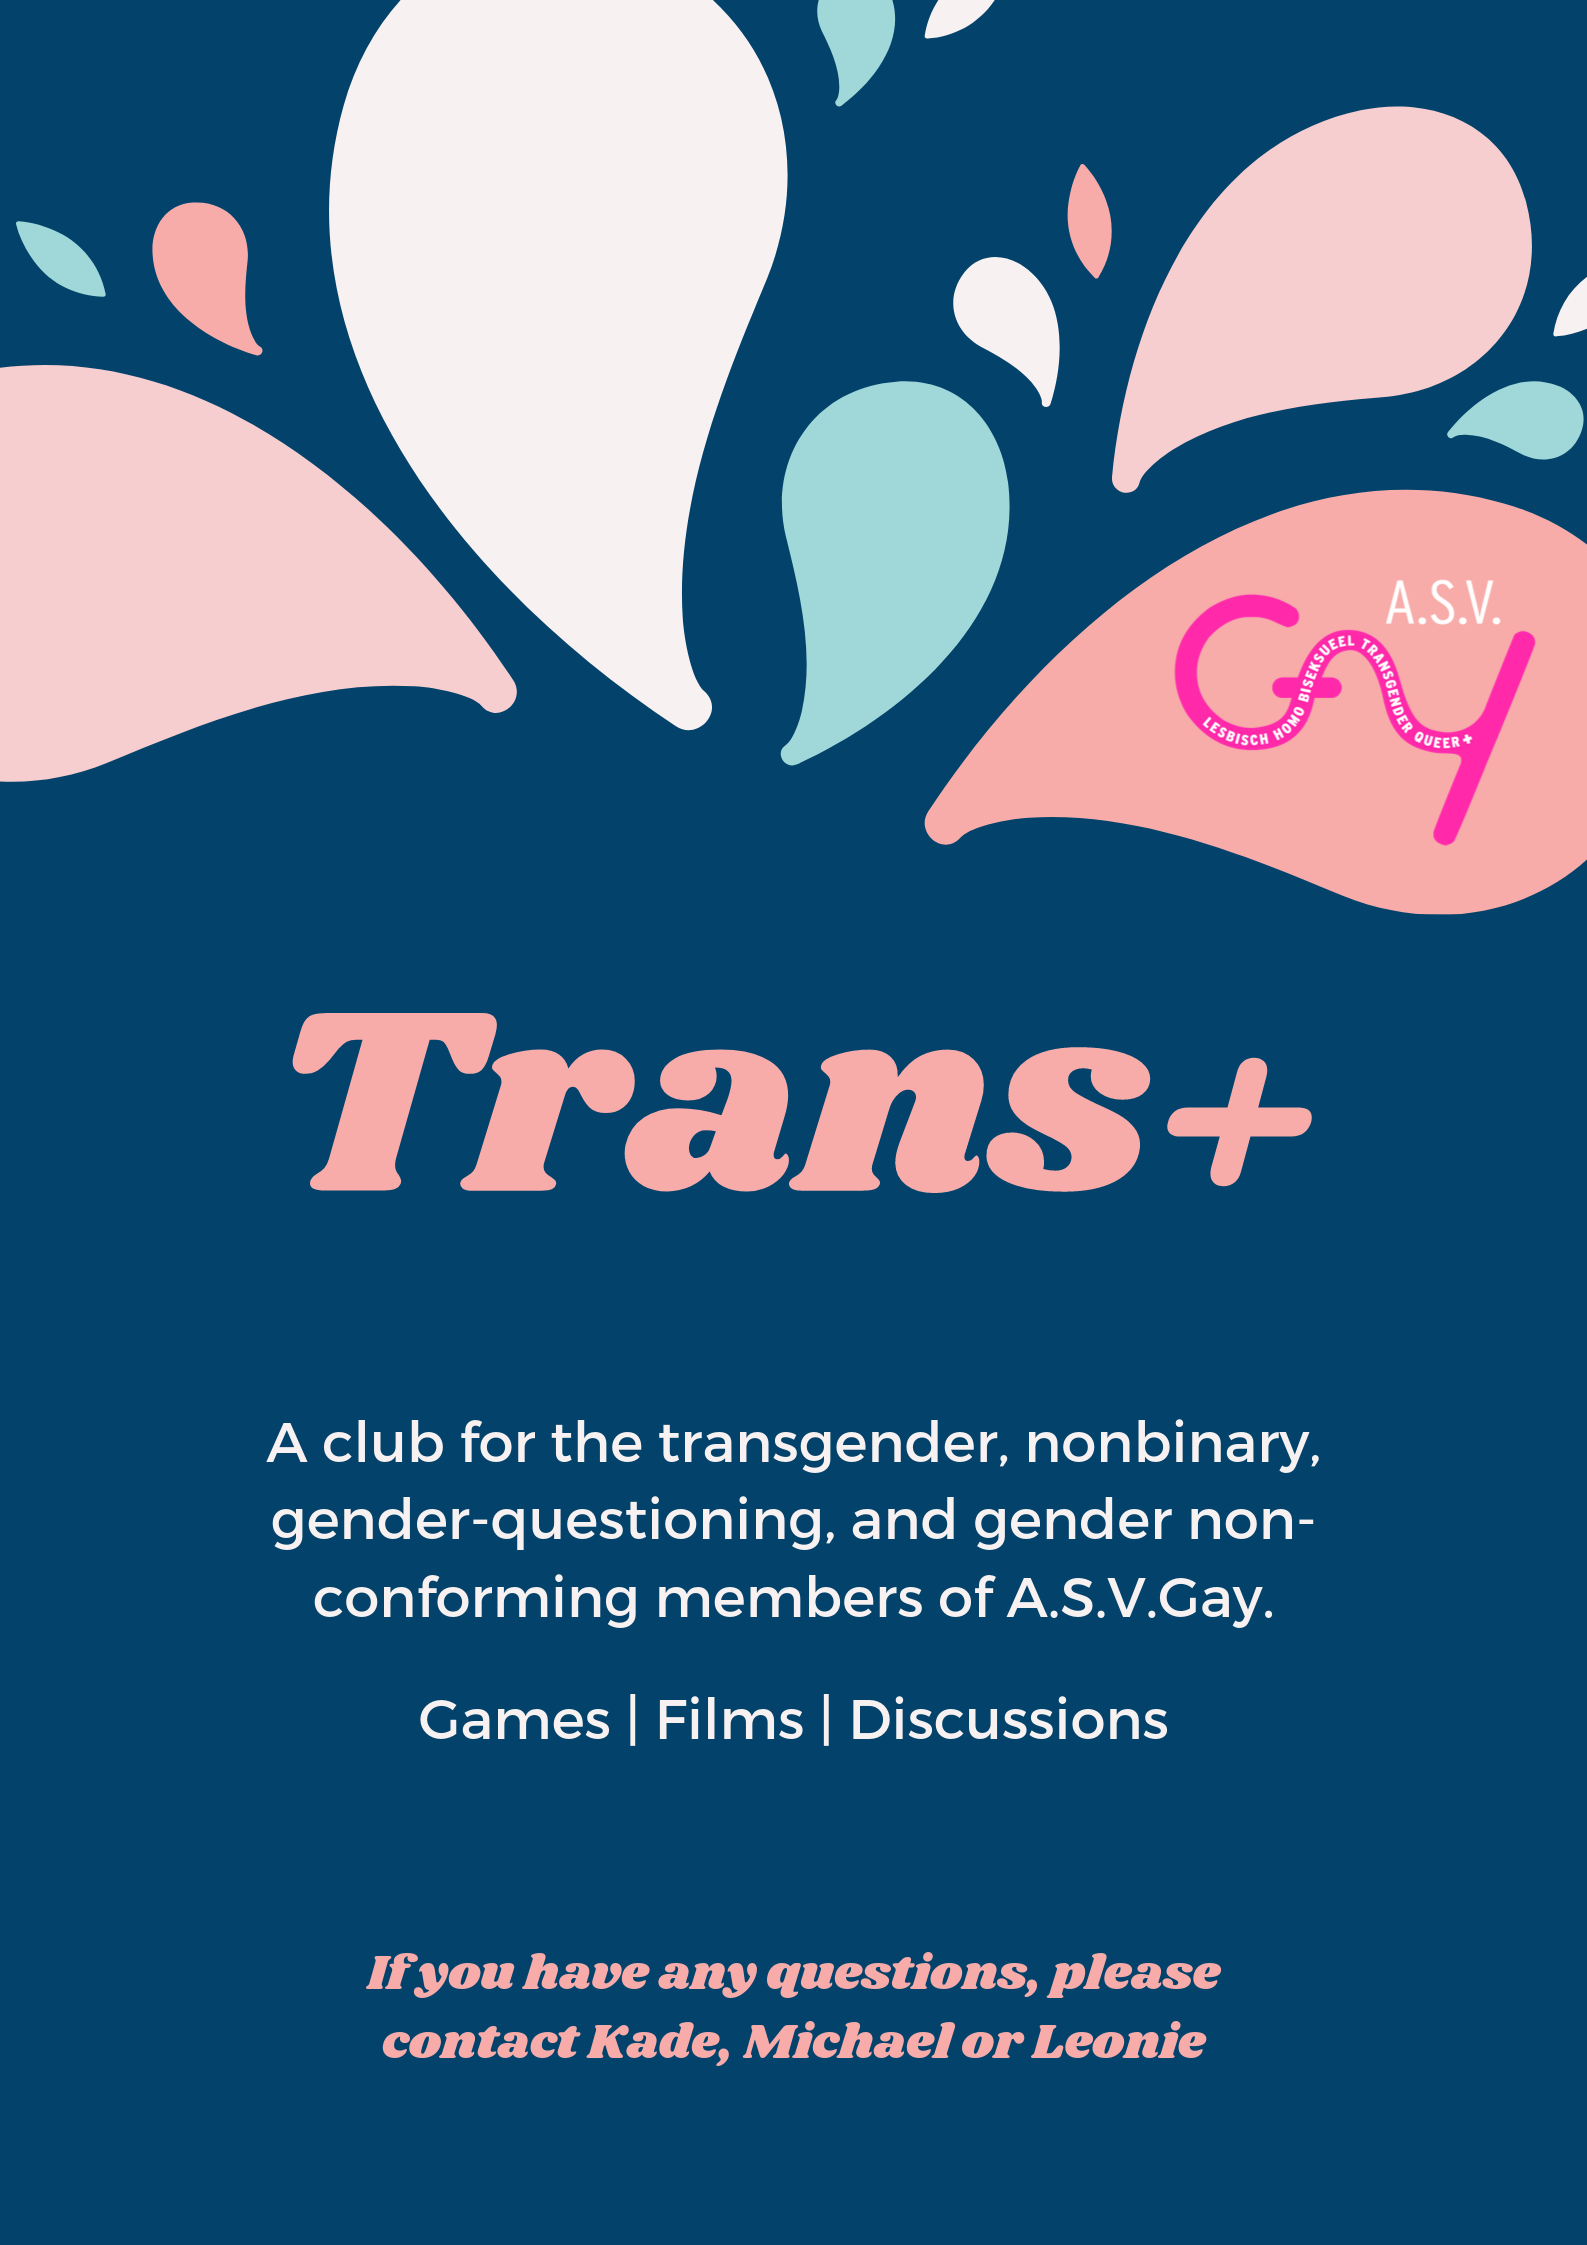 Trans+: A club for the transgender, nonbinary, gender-questioning, and gender non-conforming members of A.S.V.Gay. Games - films - discussions. If you have any questions, please contact Kade, Michael or Leonie.